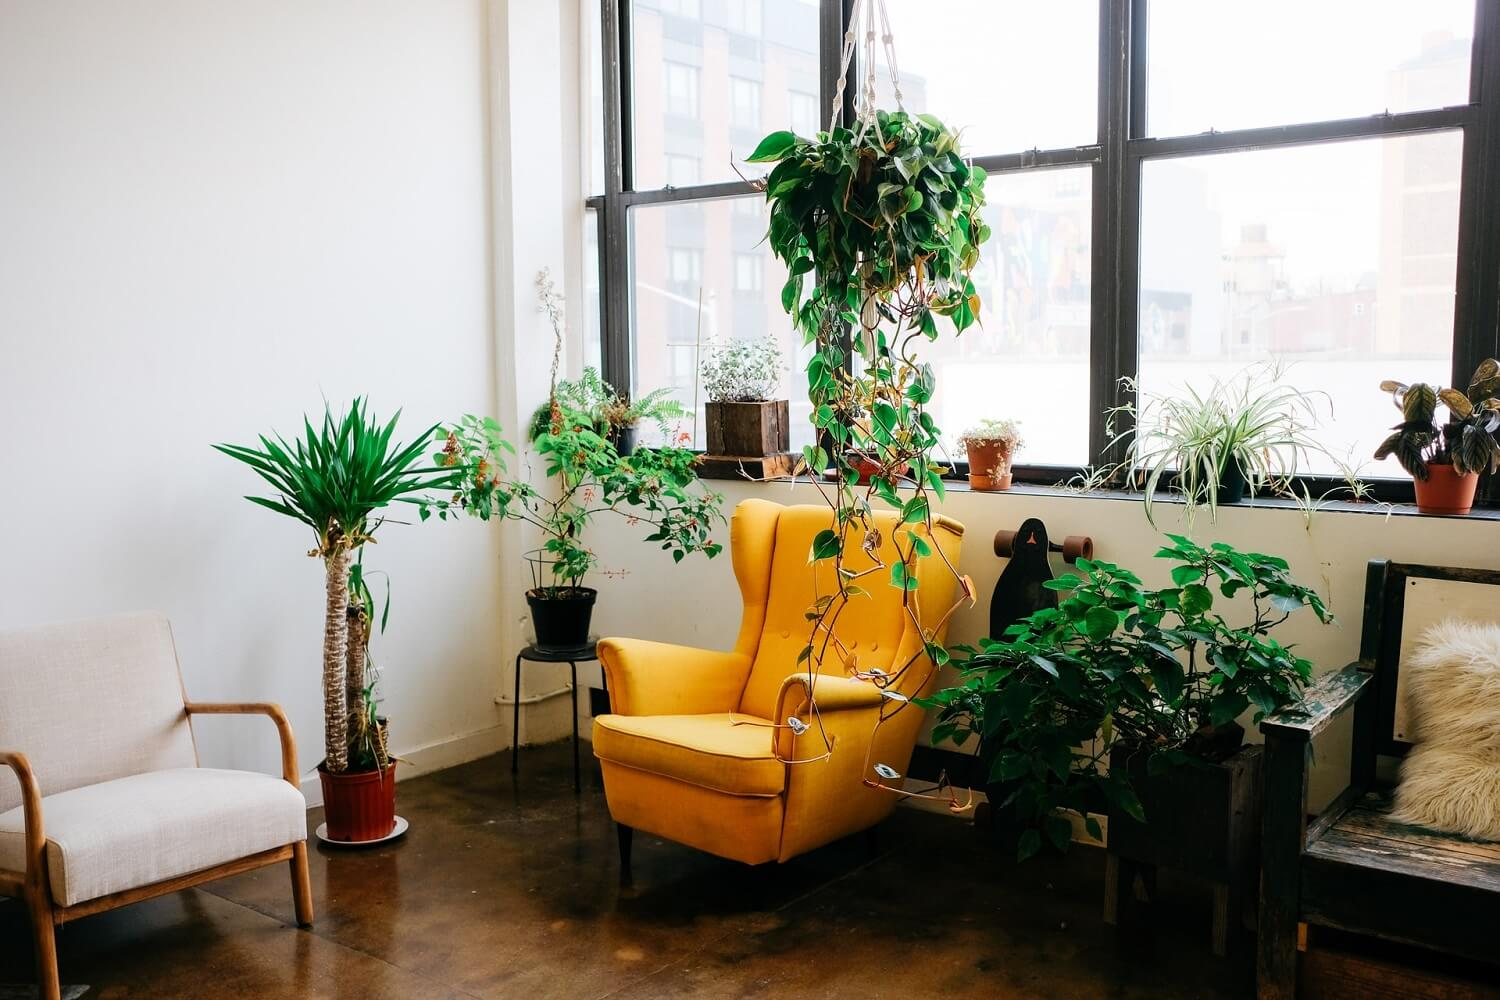 Office with yellow chair and plants